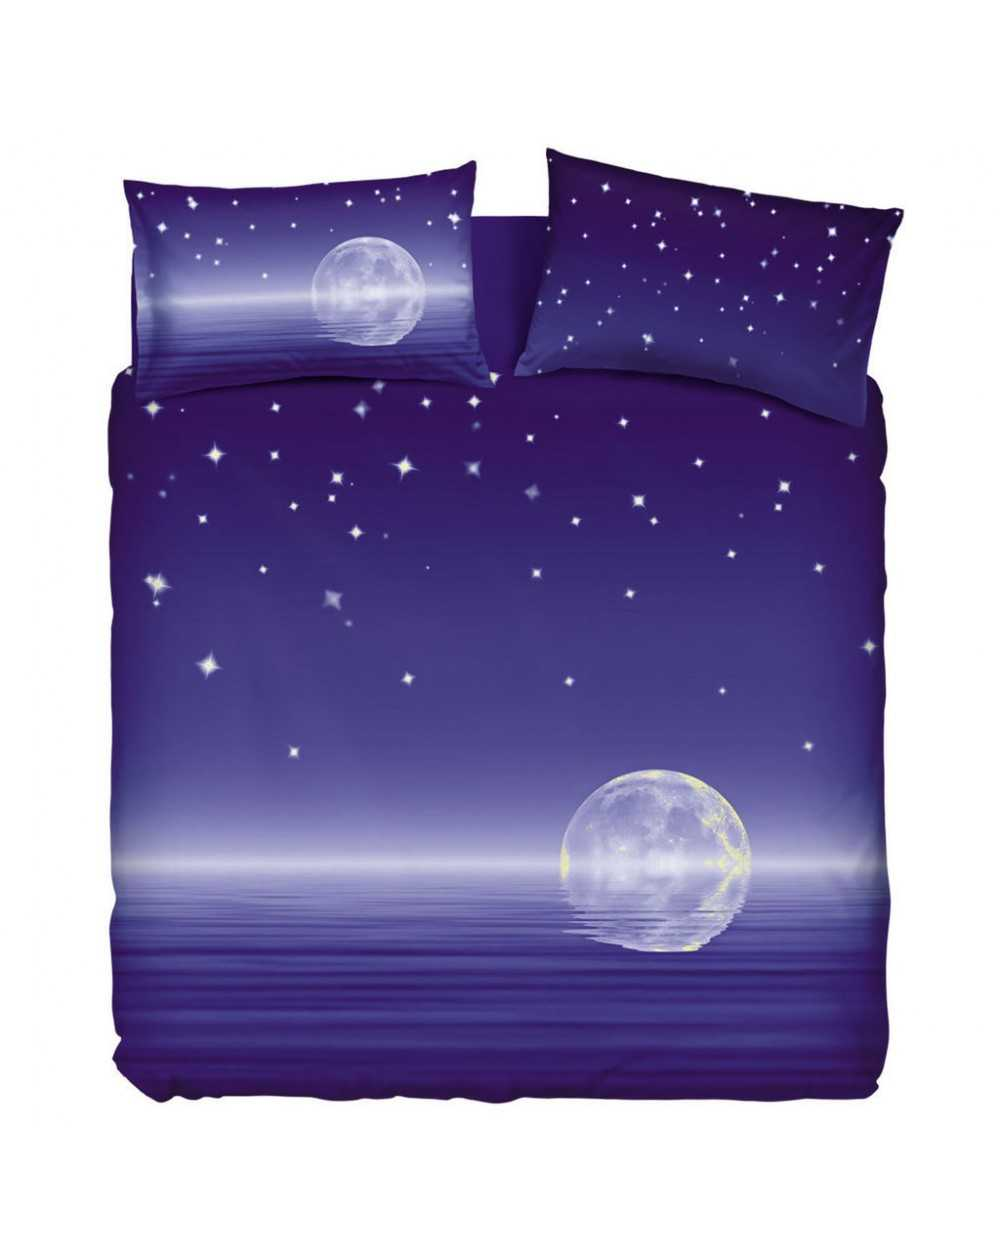 Housse de couette set copripiumino letto singolo magic moon natura bassetti rasoline l f d home - Copripiumino letto singolo ...